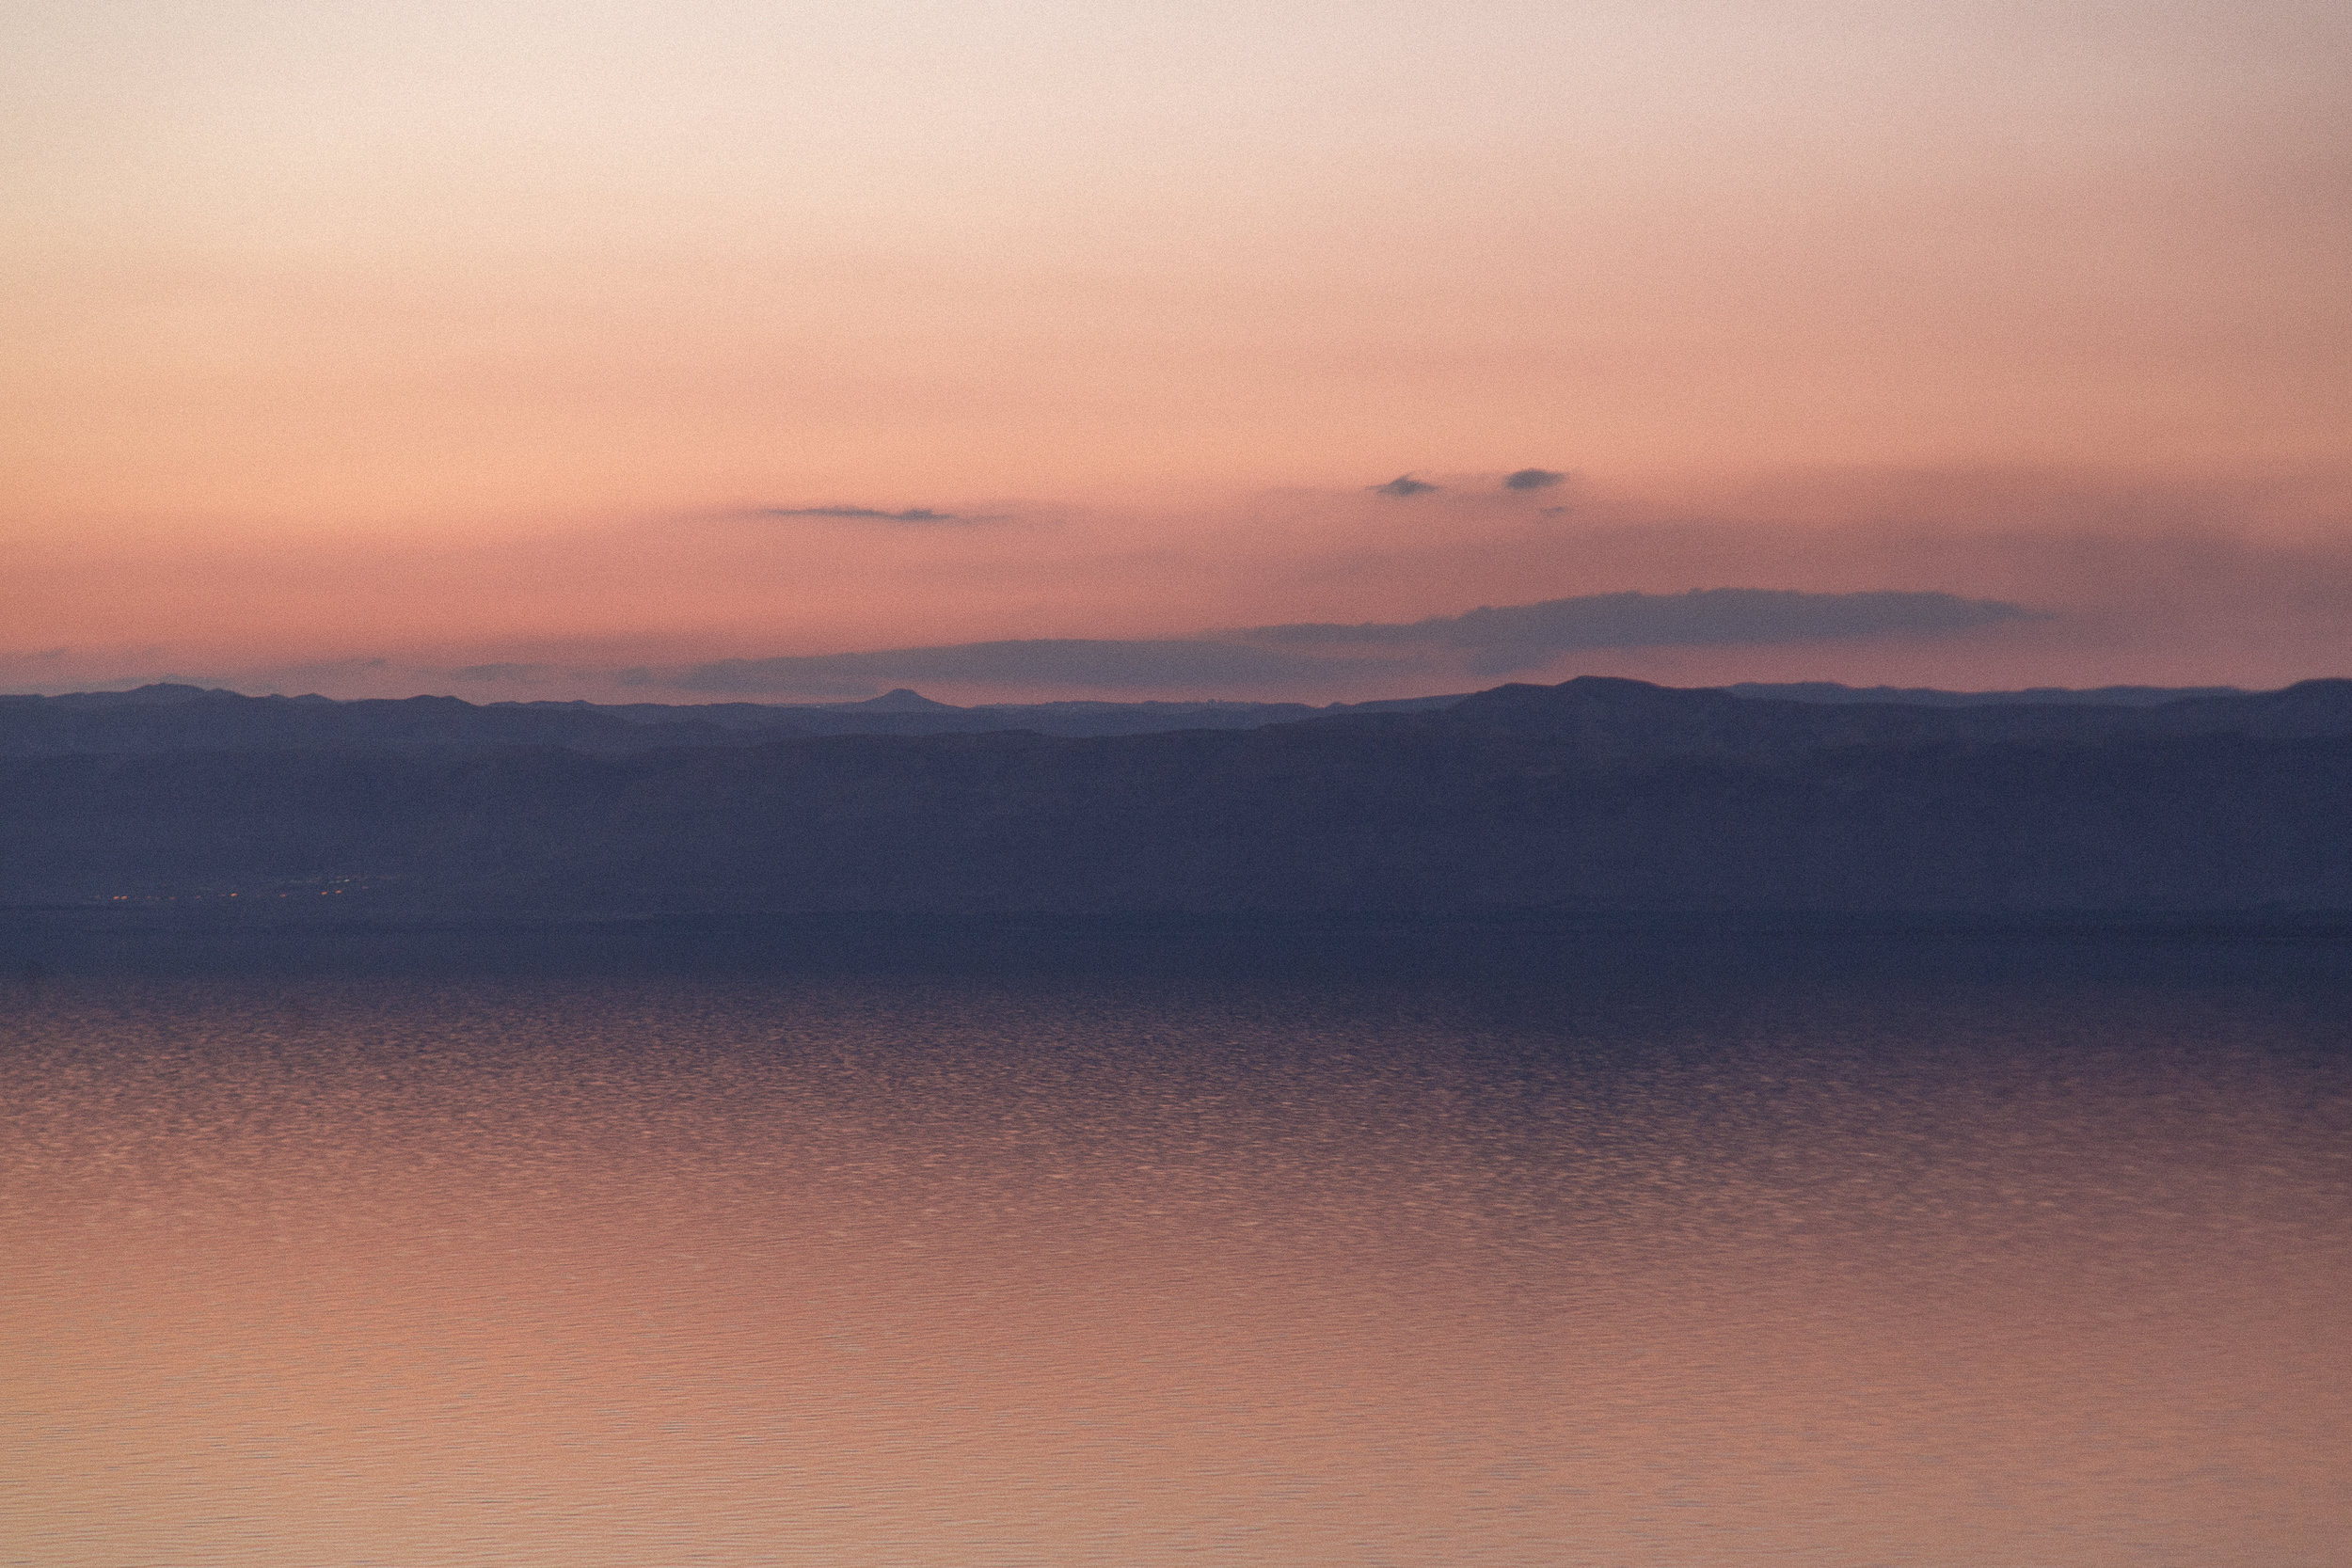 The eerie sunsets over the Dead Sea. Israel and Palestine is just a few miles away